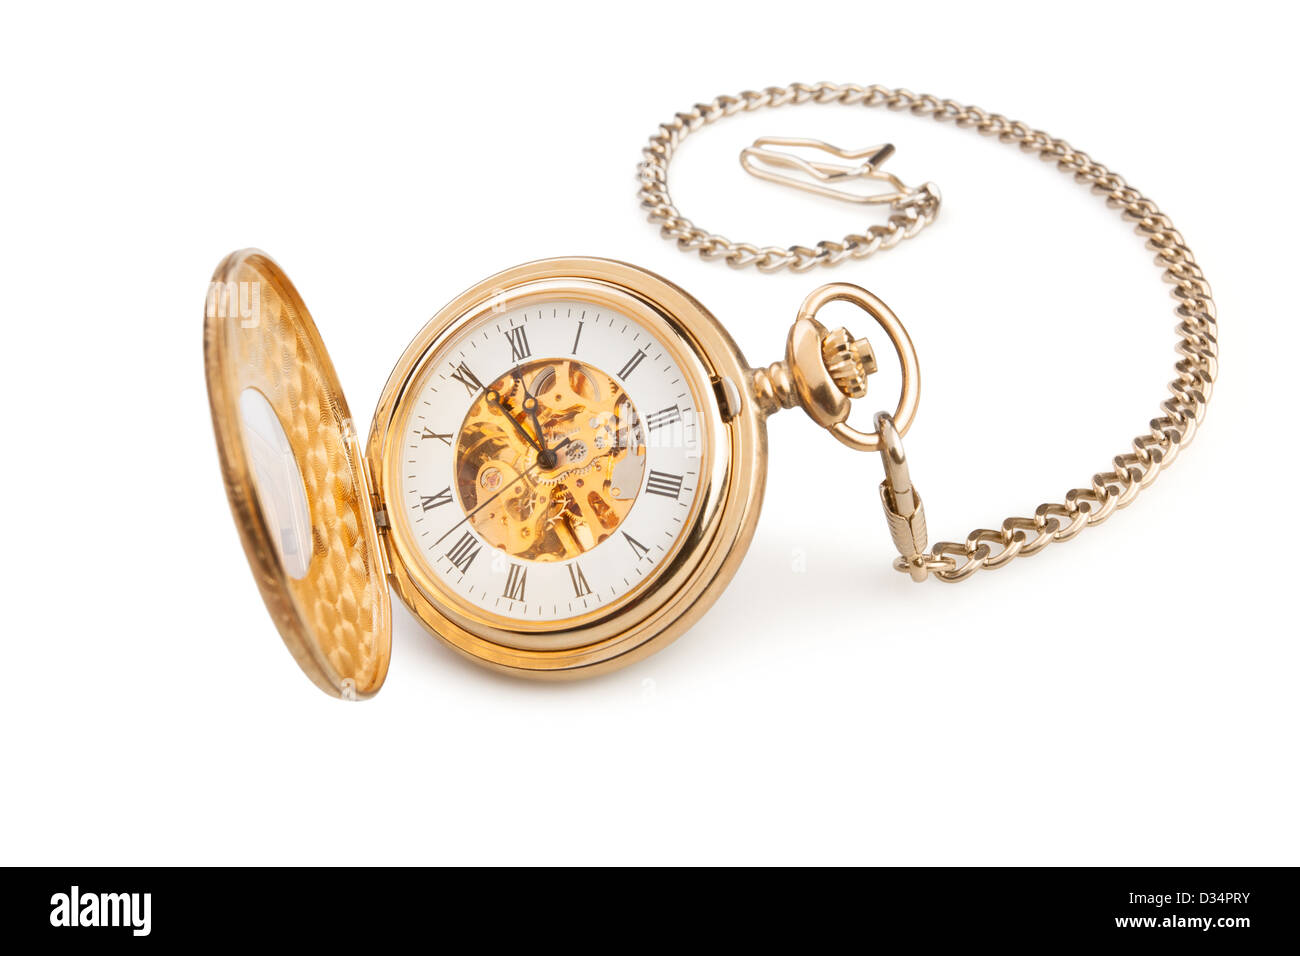 pocket watch on white background - Stock Image